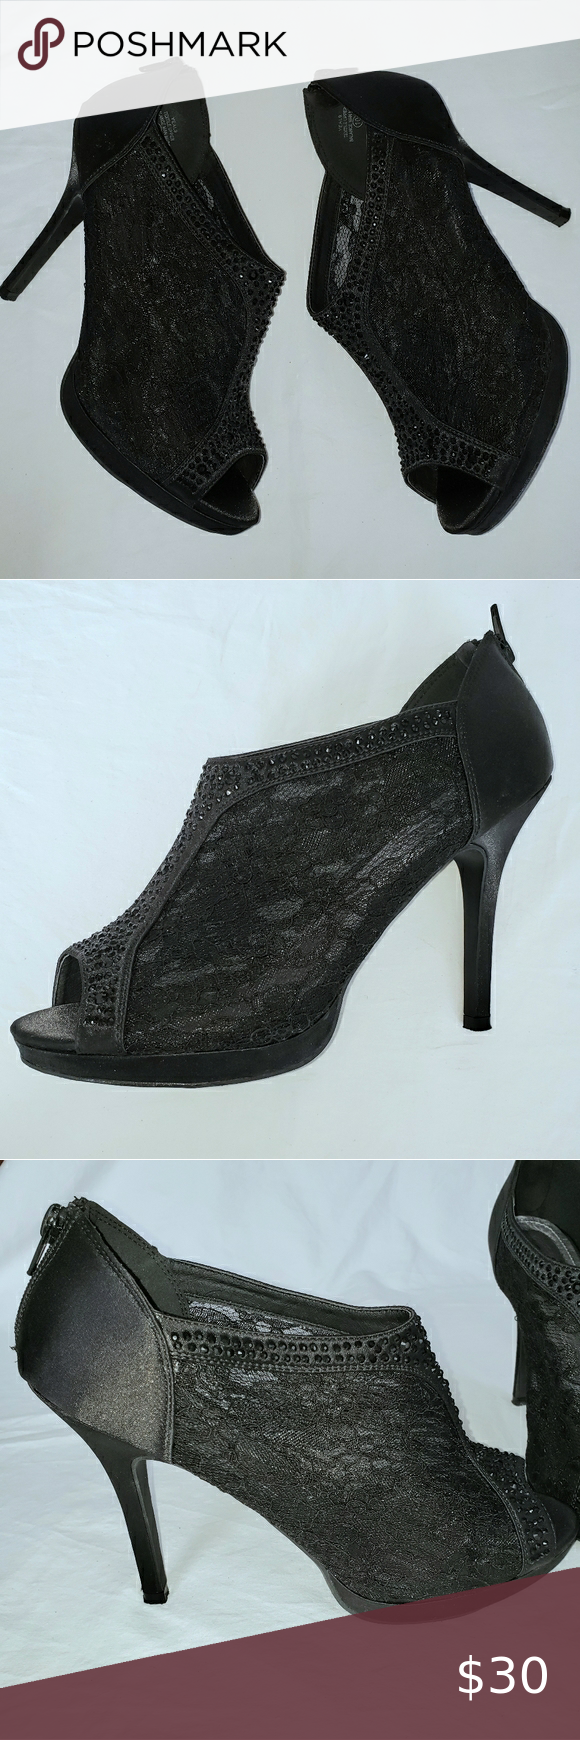 Daytrip from Buckle black satin & lace heels 10 Daytrip from Buckle black satin, lace, and black gems on these sexy high heels! Excellent condition with minor wear on the bottom form use. Very clean inside and out. Look at all the details, very cute! Zips up in the back of the heel. Heels measures roughly 4.5in, size 10. Please ask any questions you may have. Always willing to negotiate. #43 Daytrip Shoes Heels